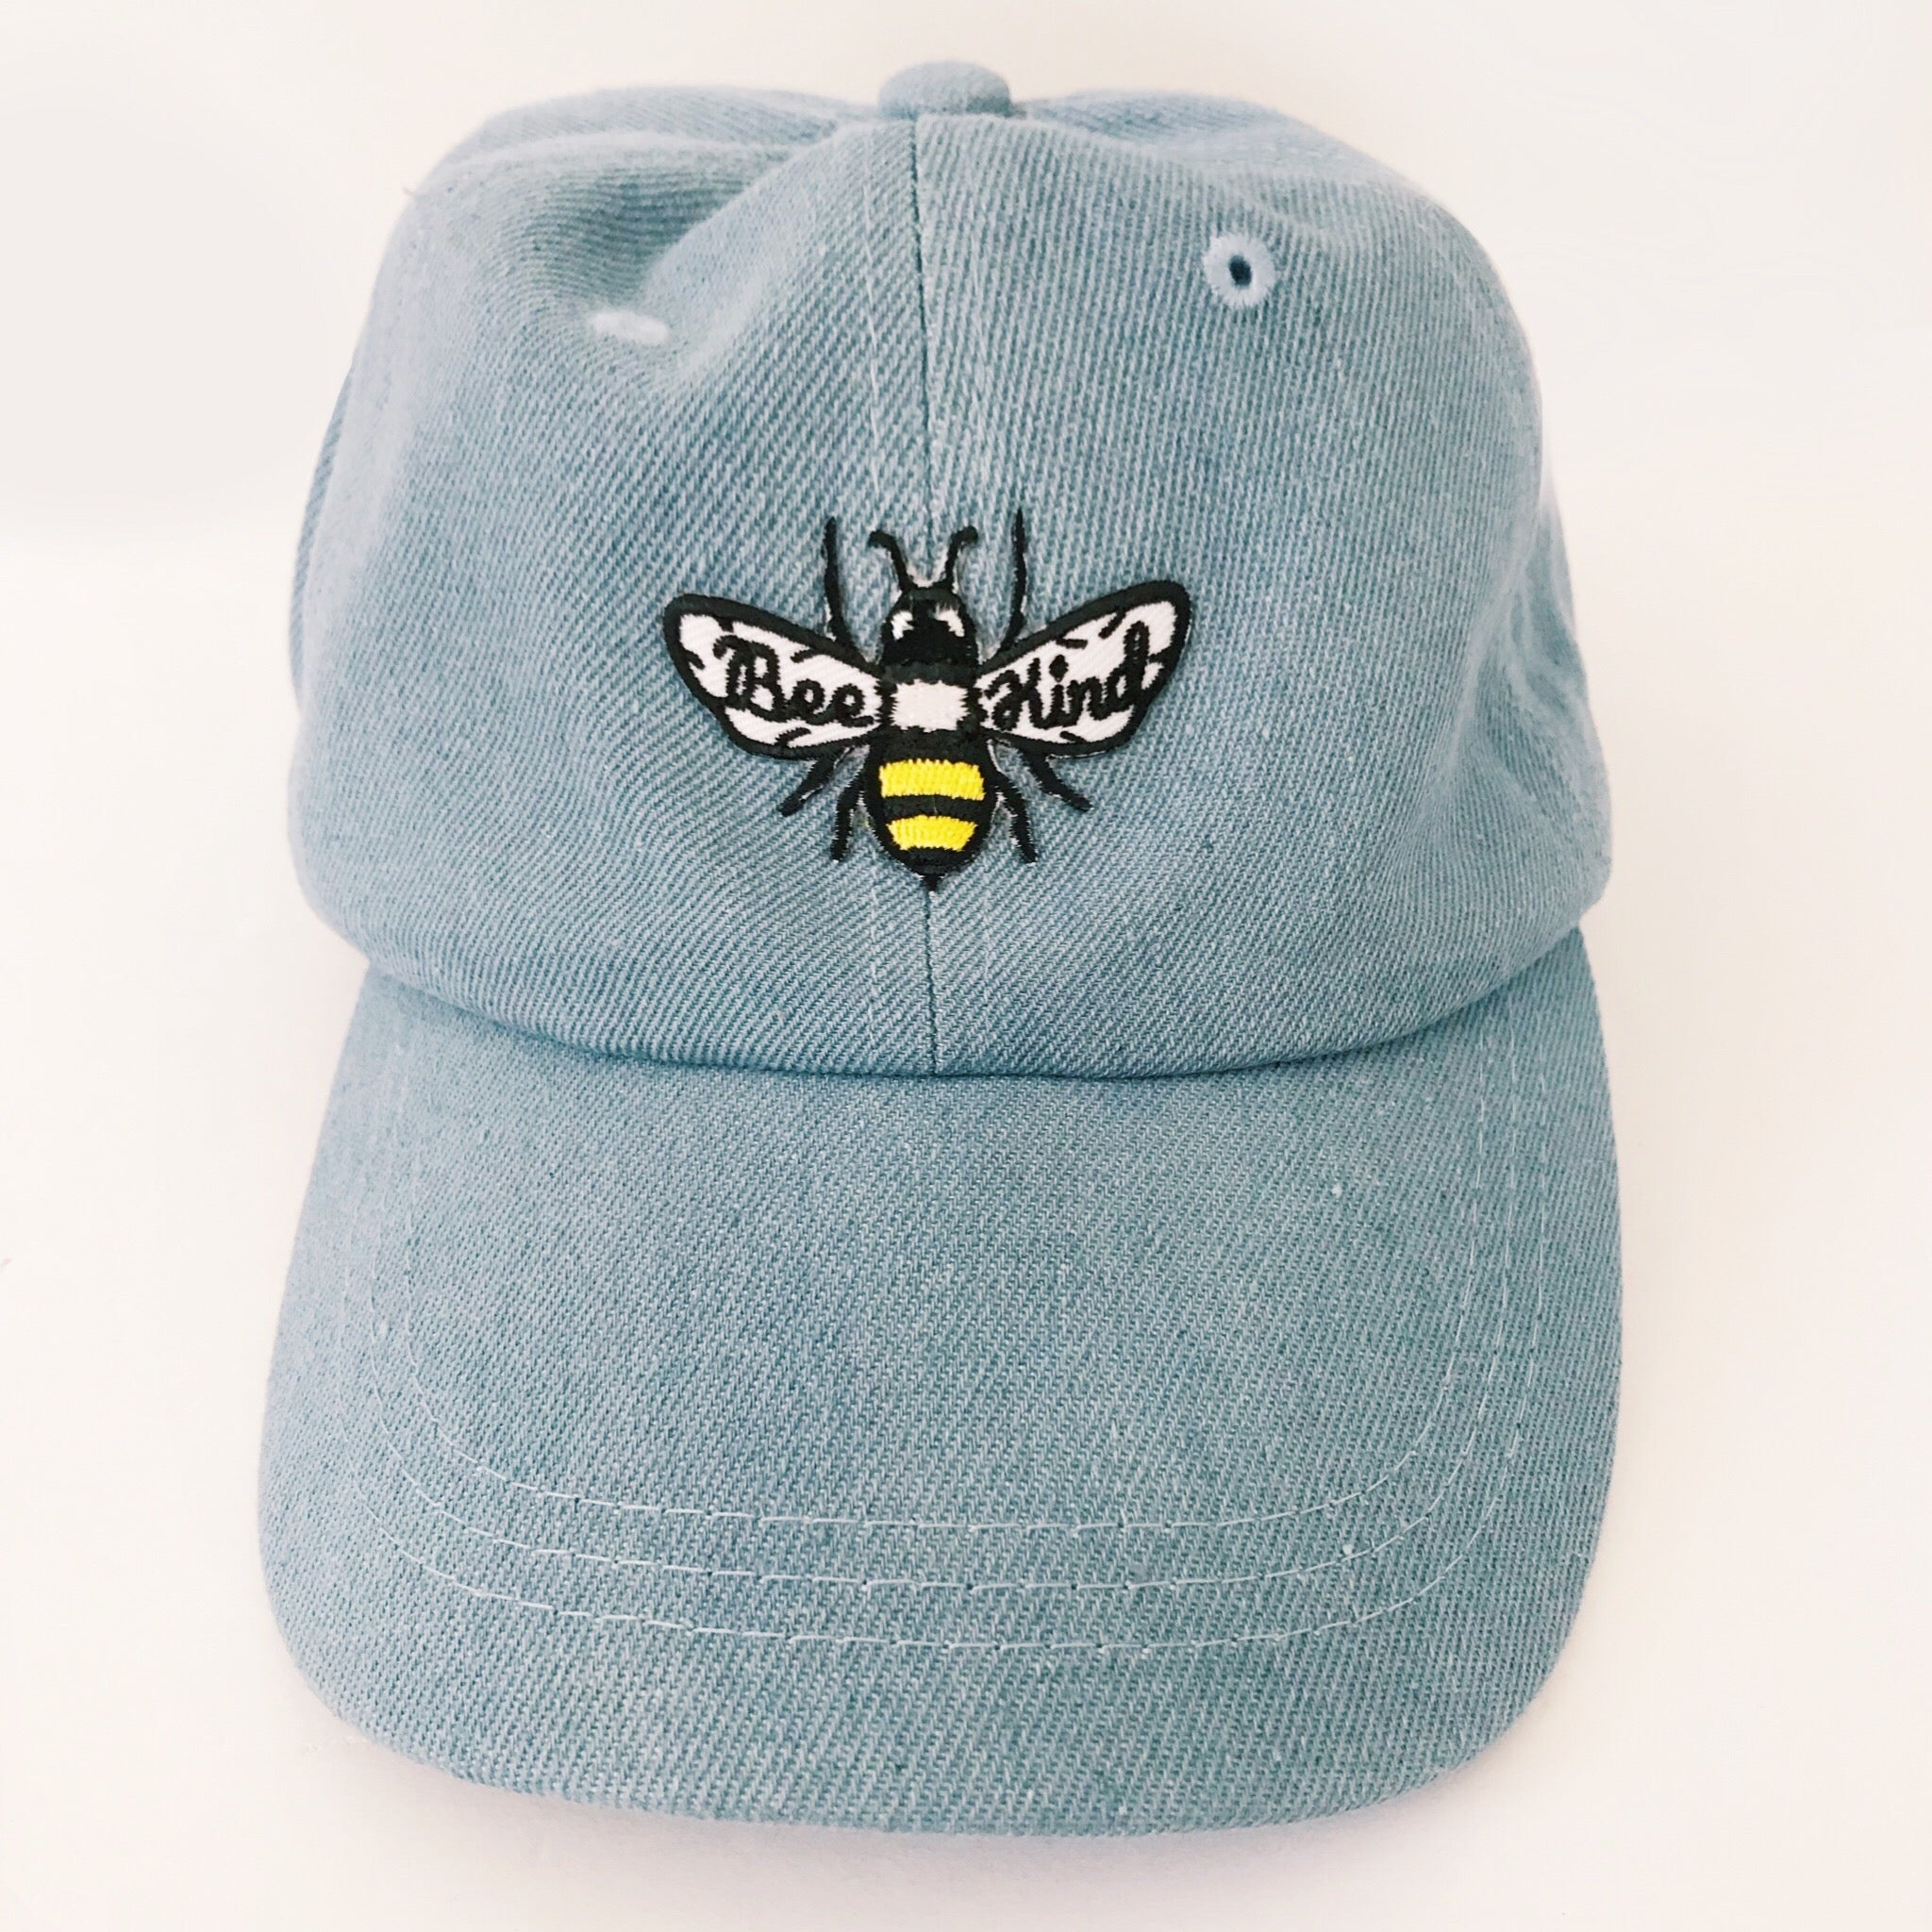 Bee Kind Embroidered Baseball Cap